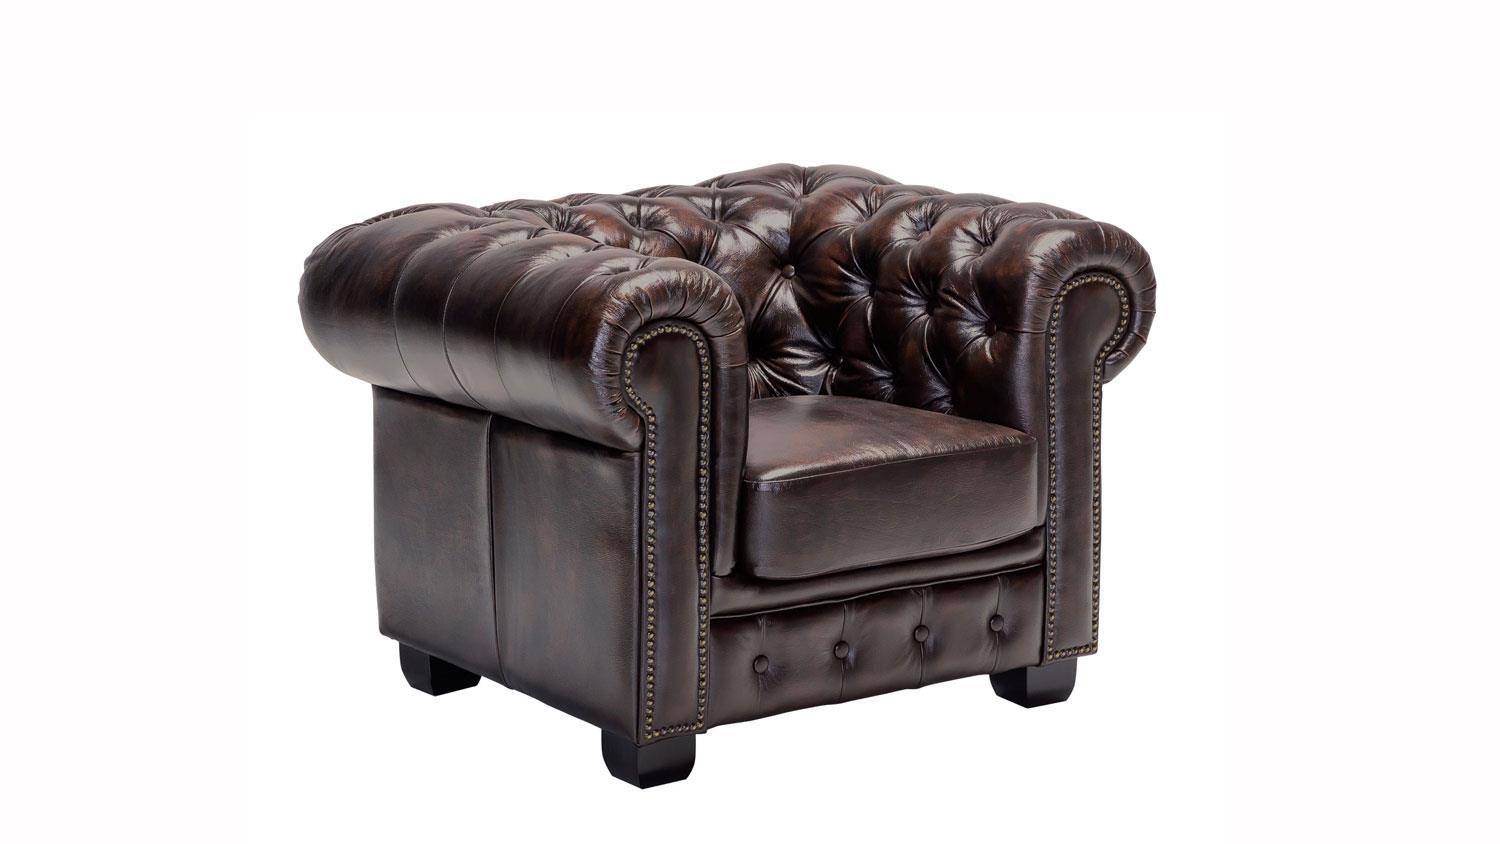 Chesterfield Sessel Chesterfield Sessel Leder Braun Antik Luxus Hochwertig